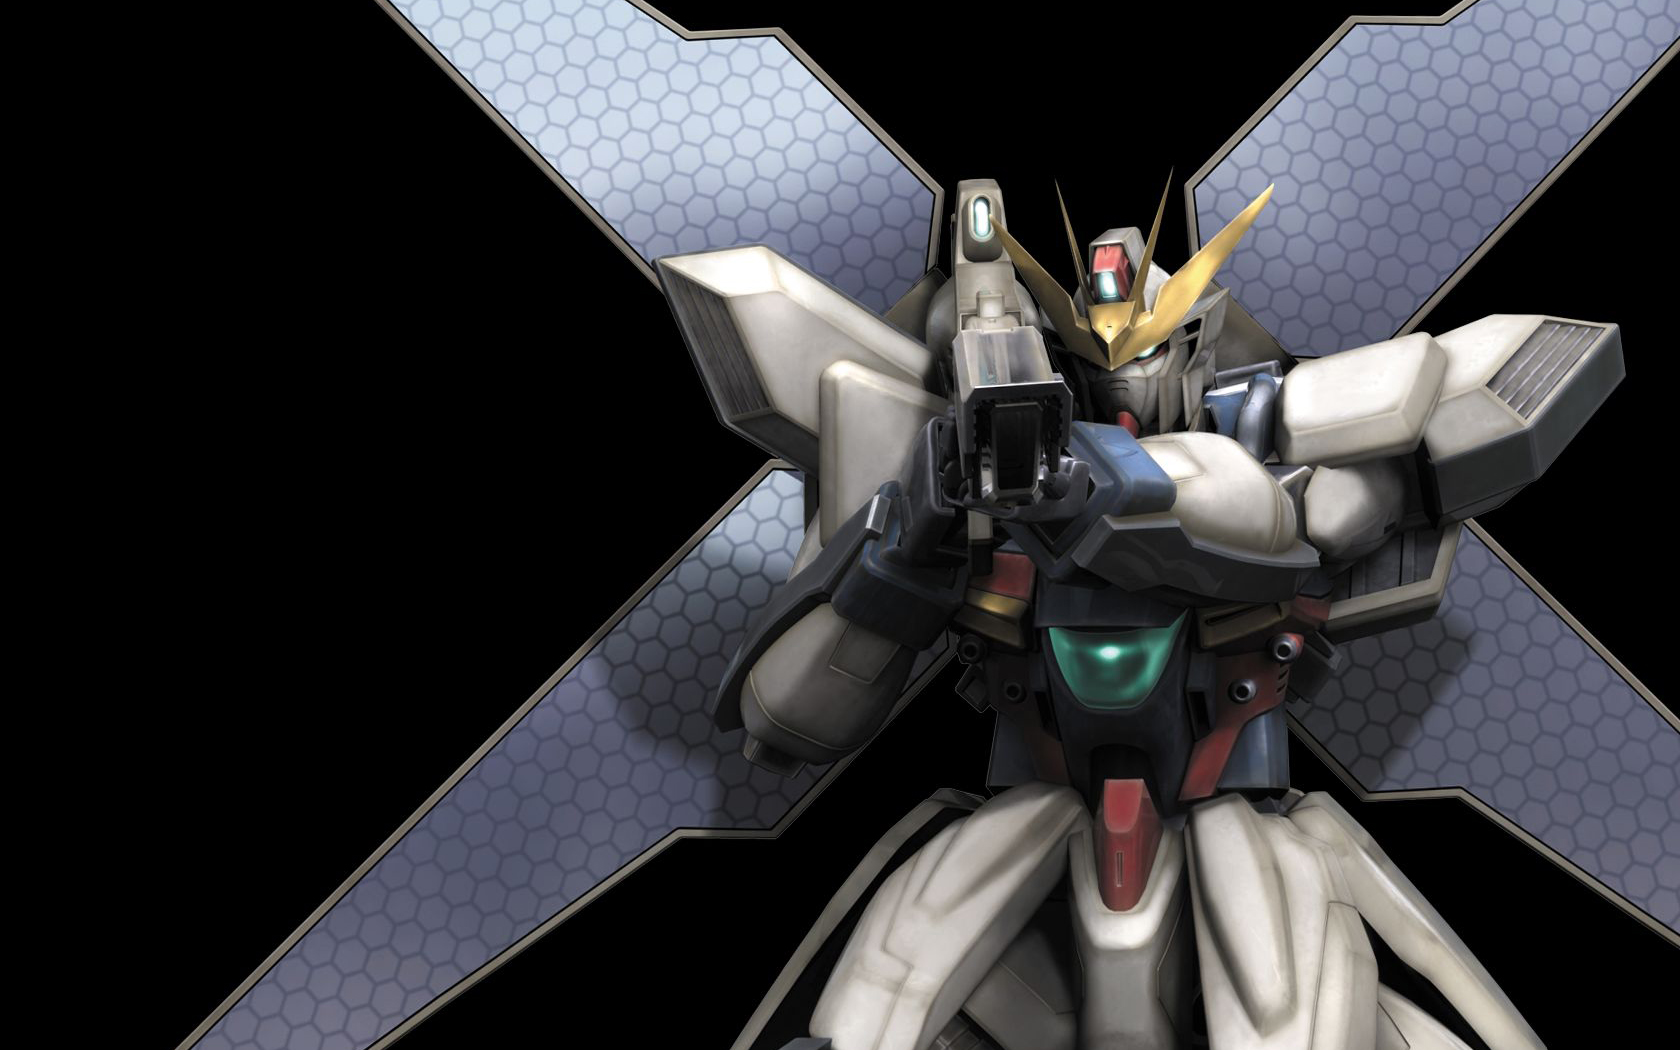 Gundam Wallpaper 1680x1050 1920x1080 More Pictures 1680x1050